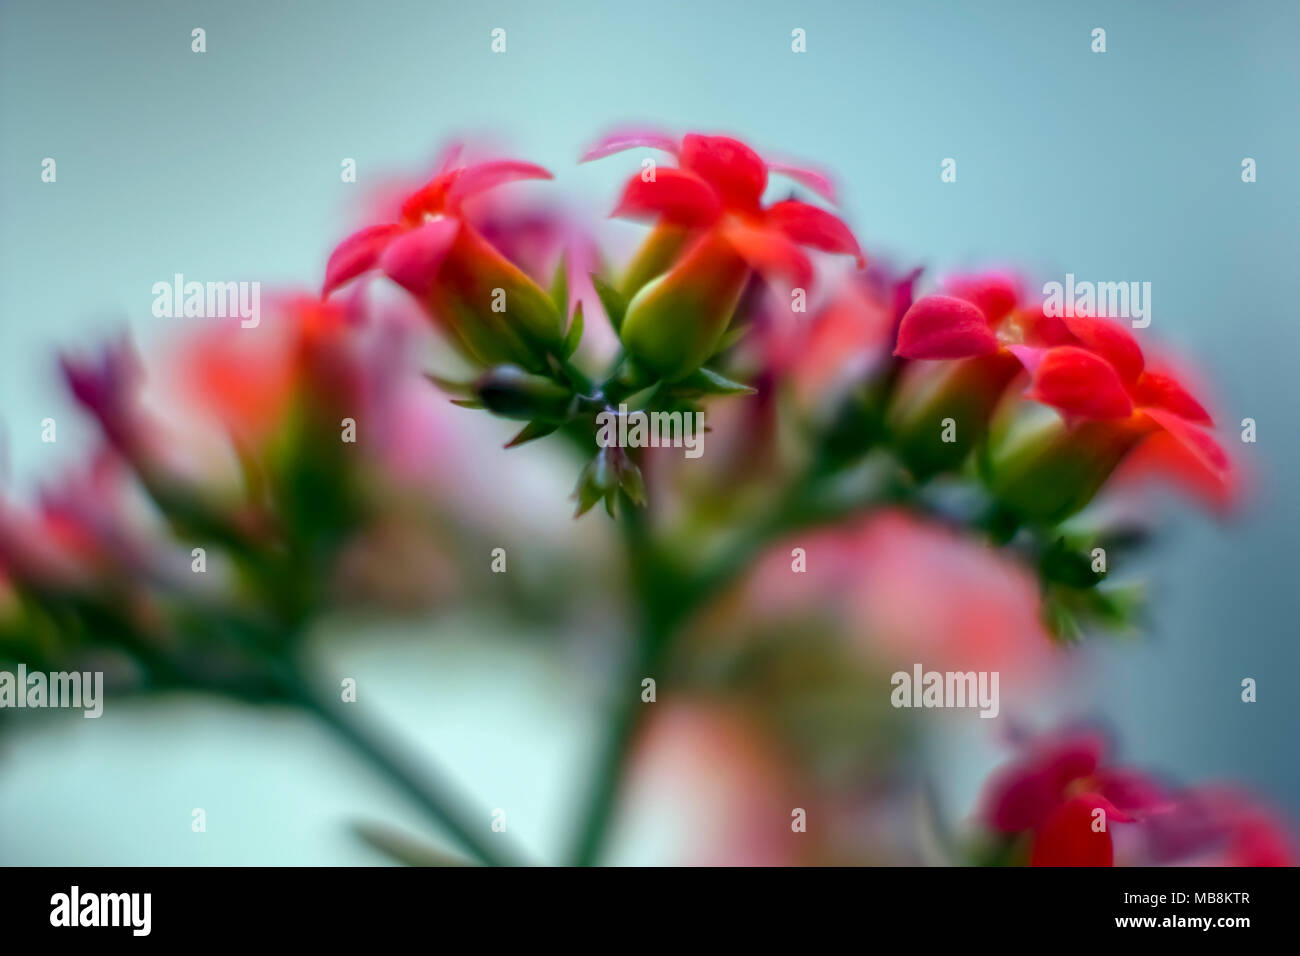 Extreme closeup of a flower with red petals - Stock Image